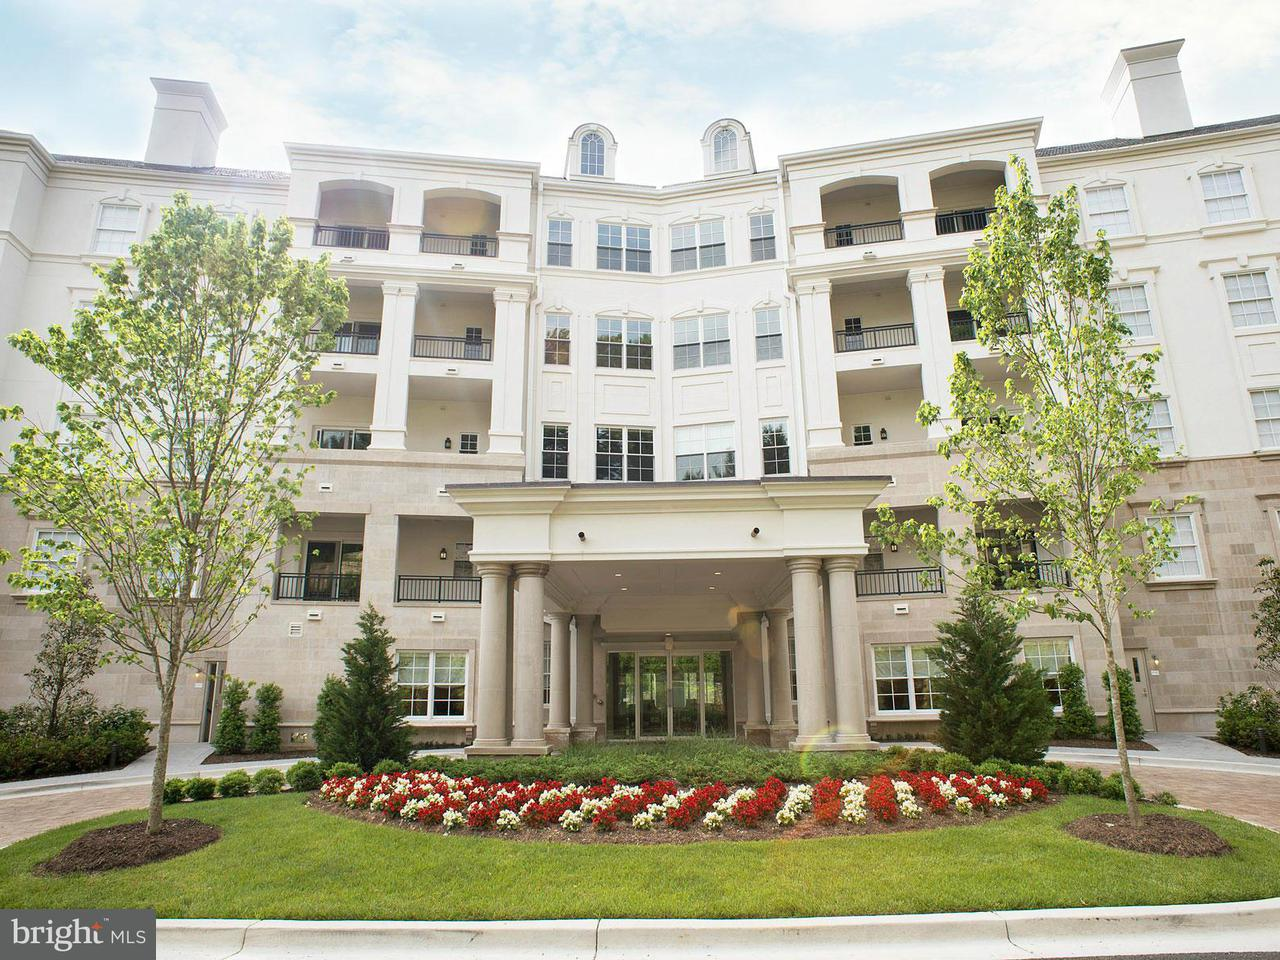 Condominium for Sale at 8111 River Rd #144 8111 River Rd #144 Bethesda, Maryland 20817 United States